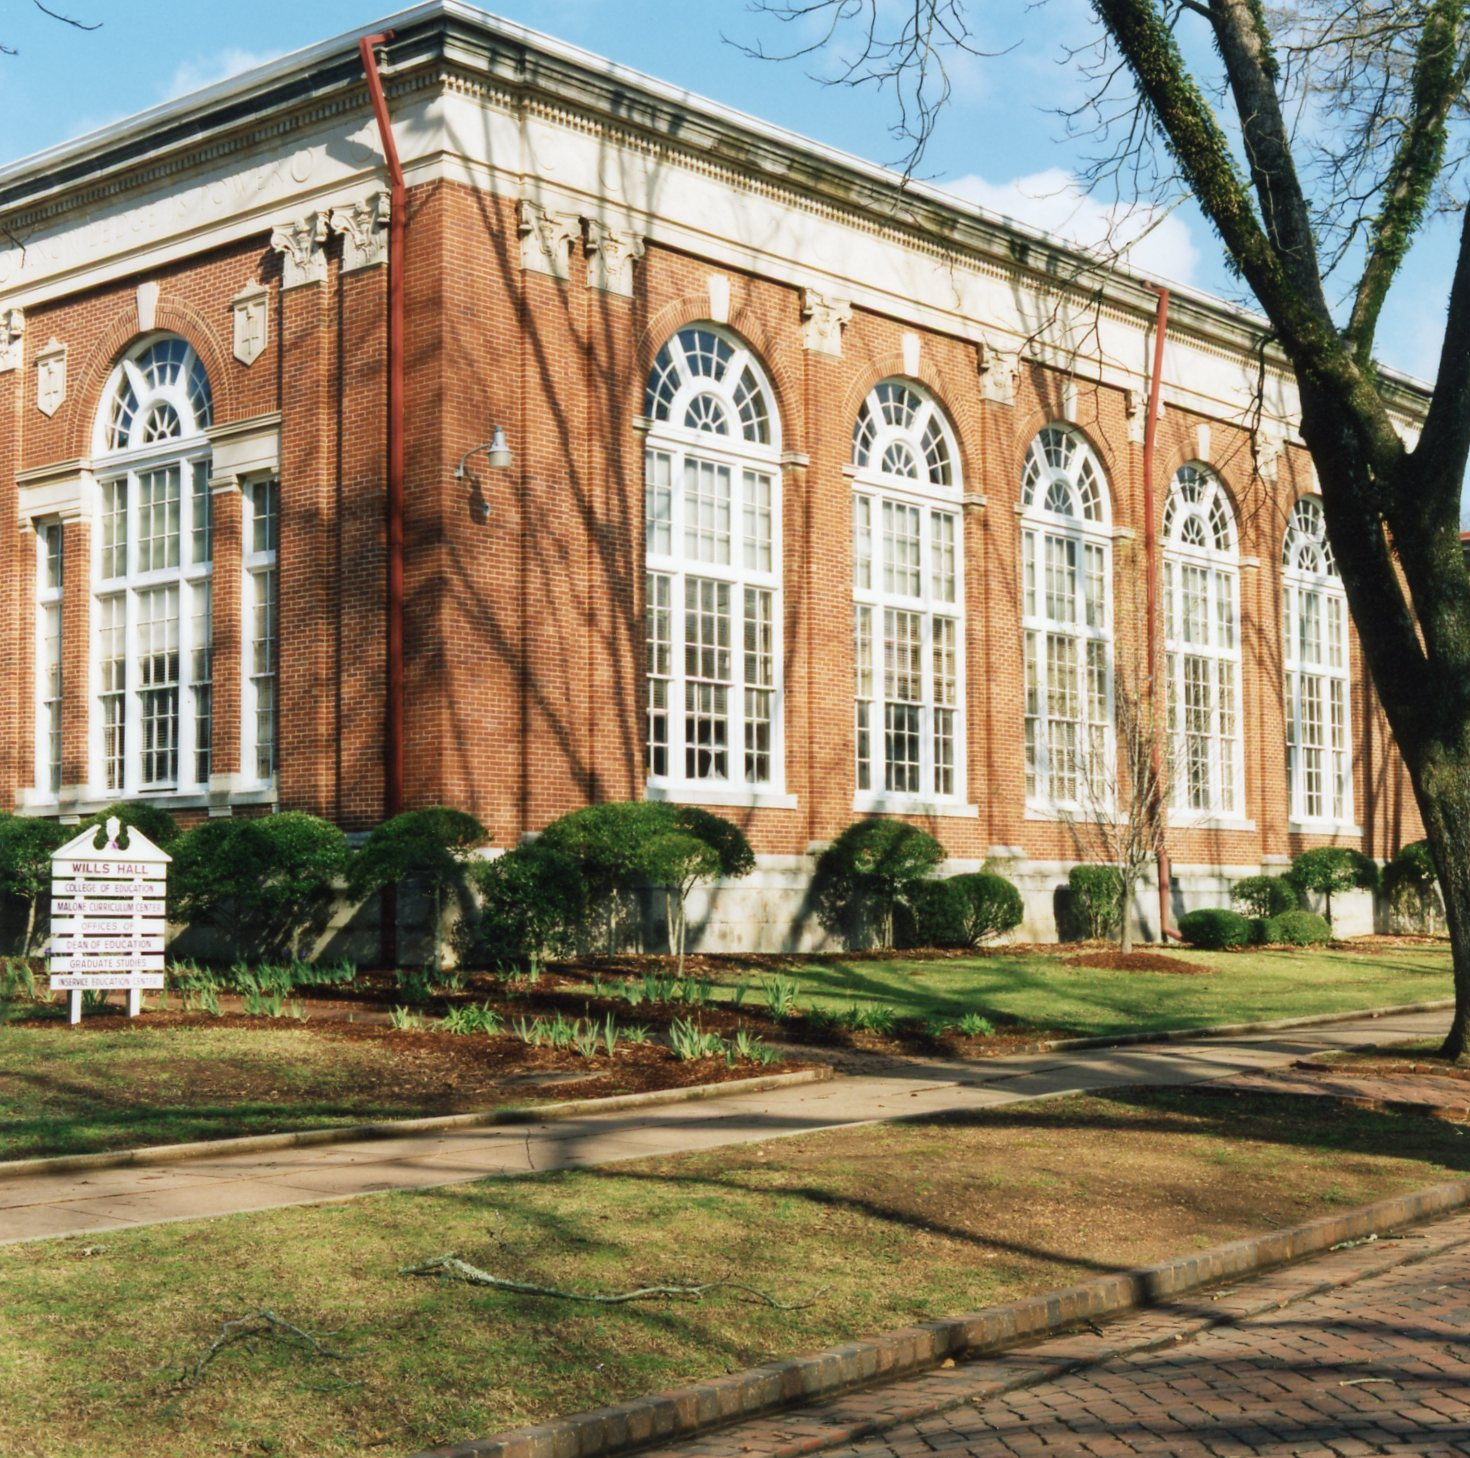 A scenic picture of Wills Hall in its still current role as the building for the College of Education.